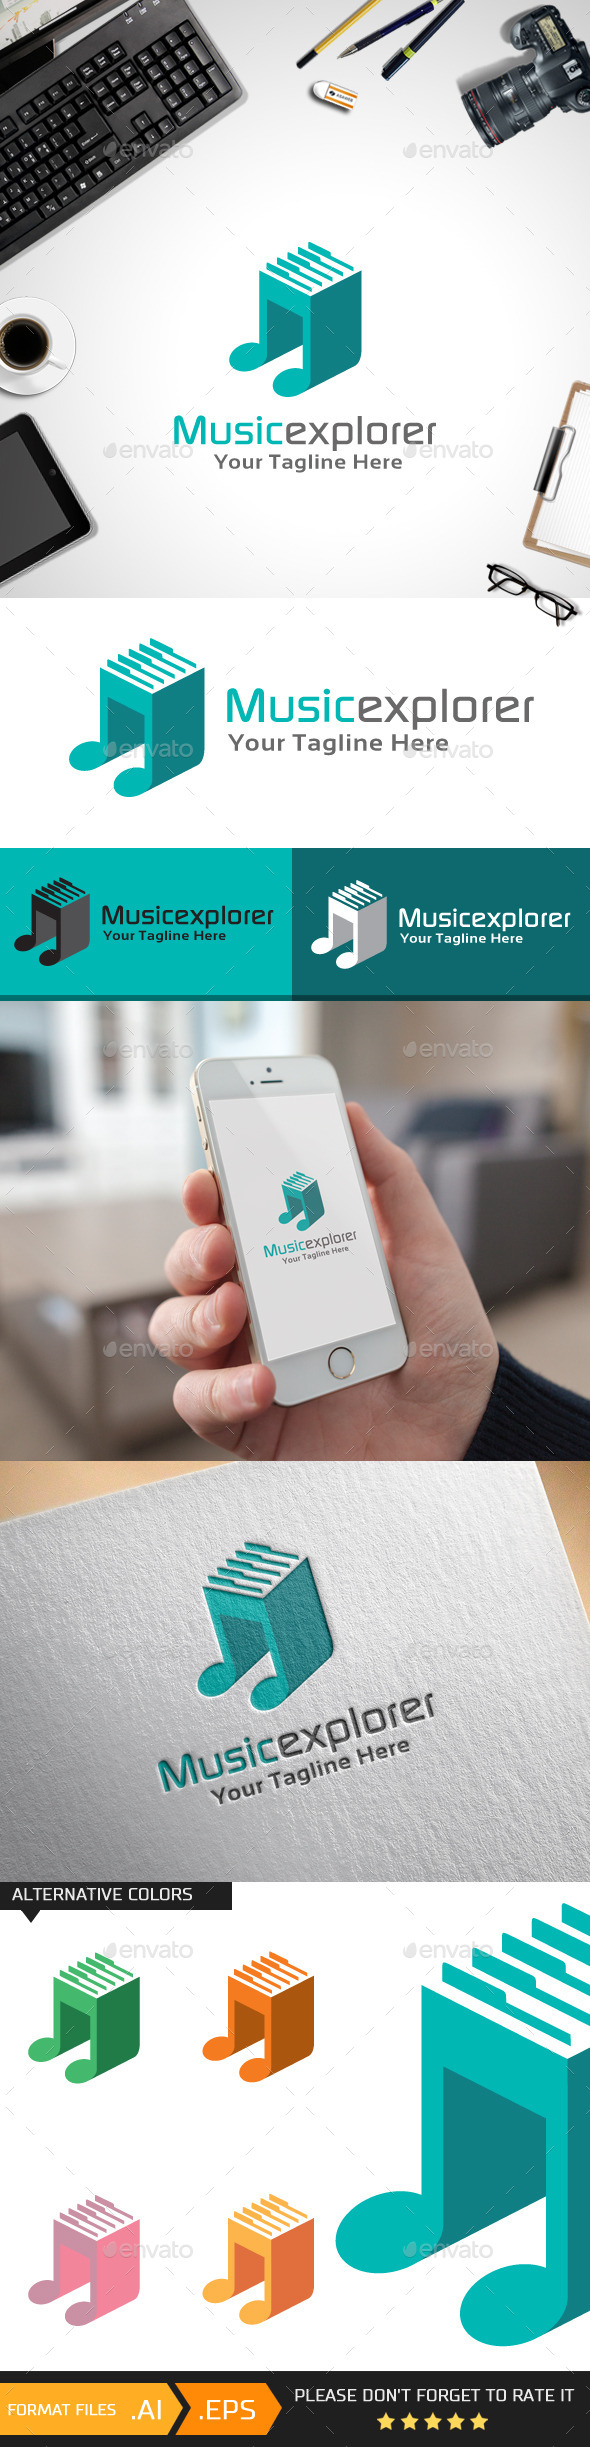 GraphicRiver Musicexplorer Logo Template 10429336